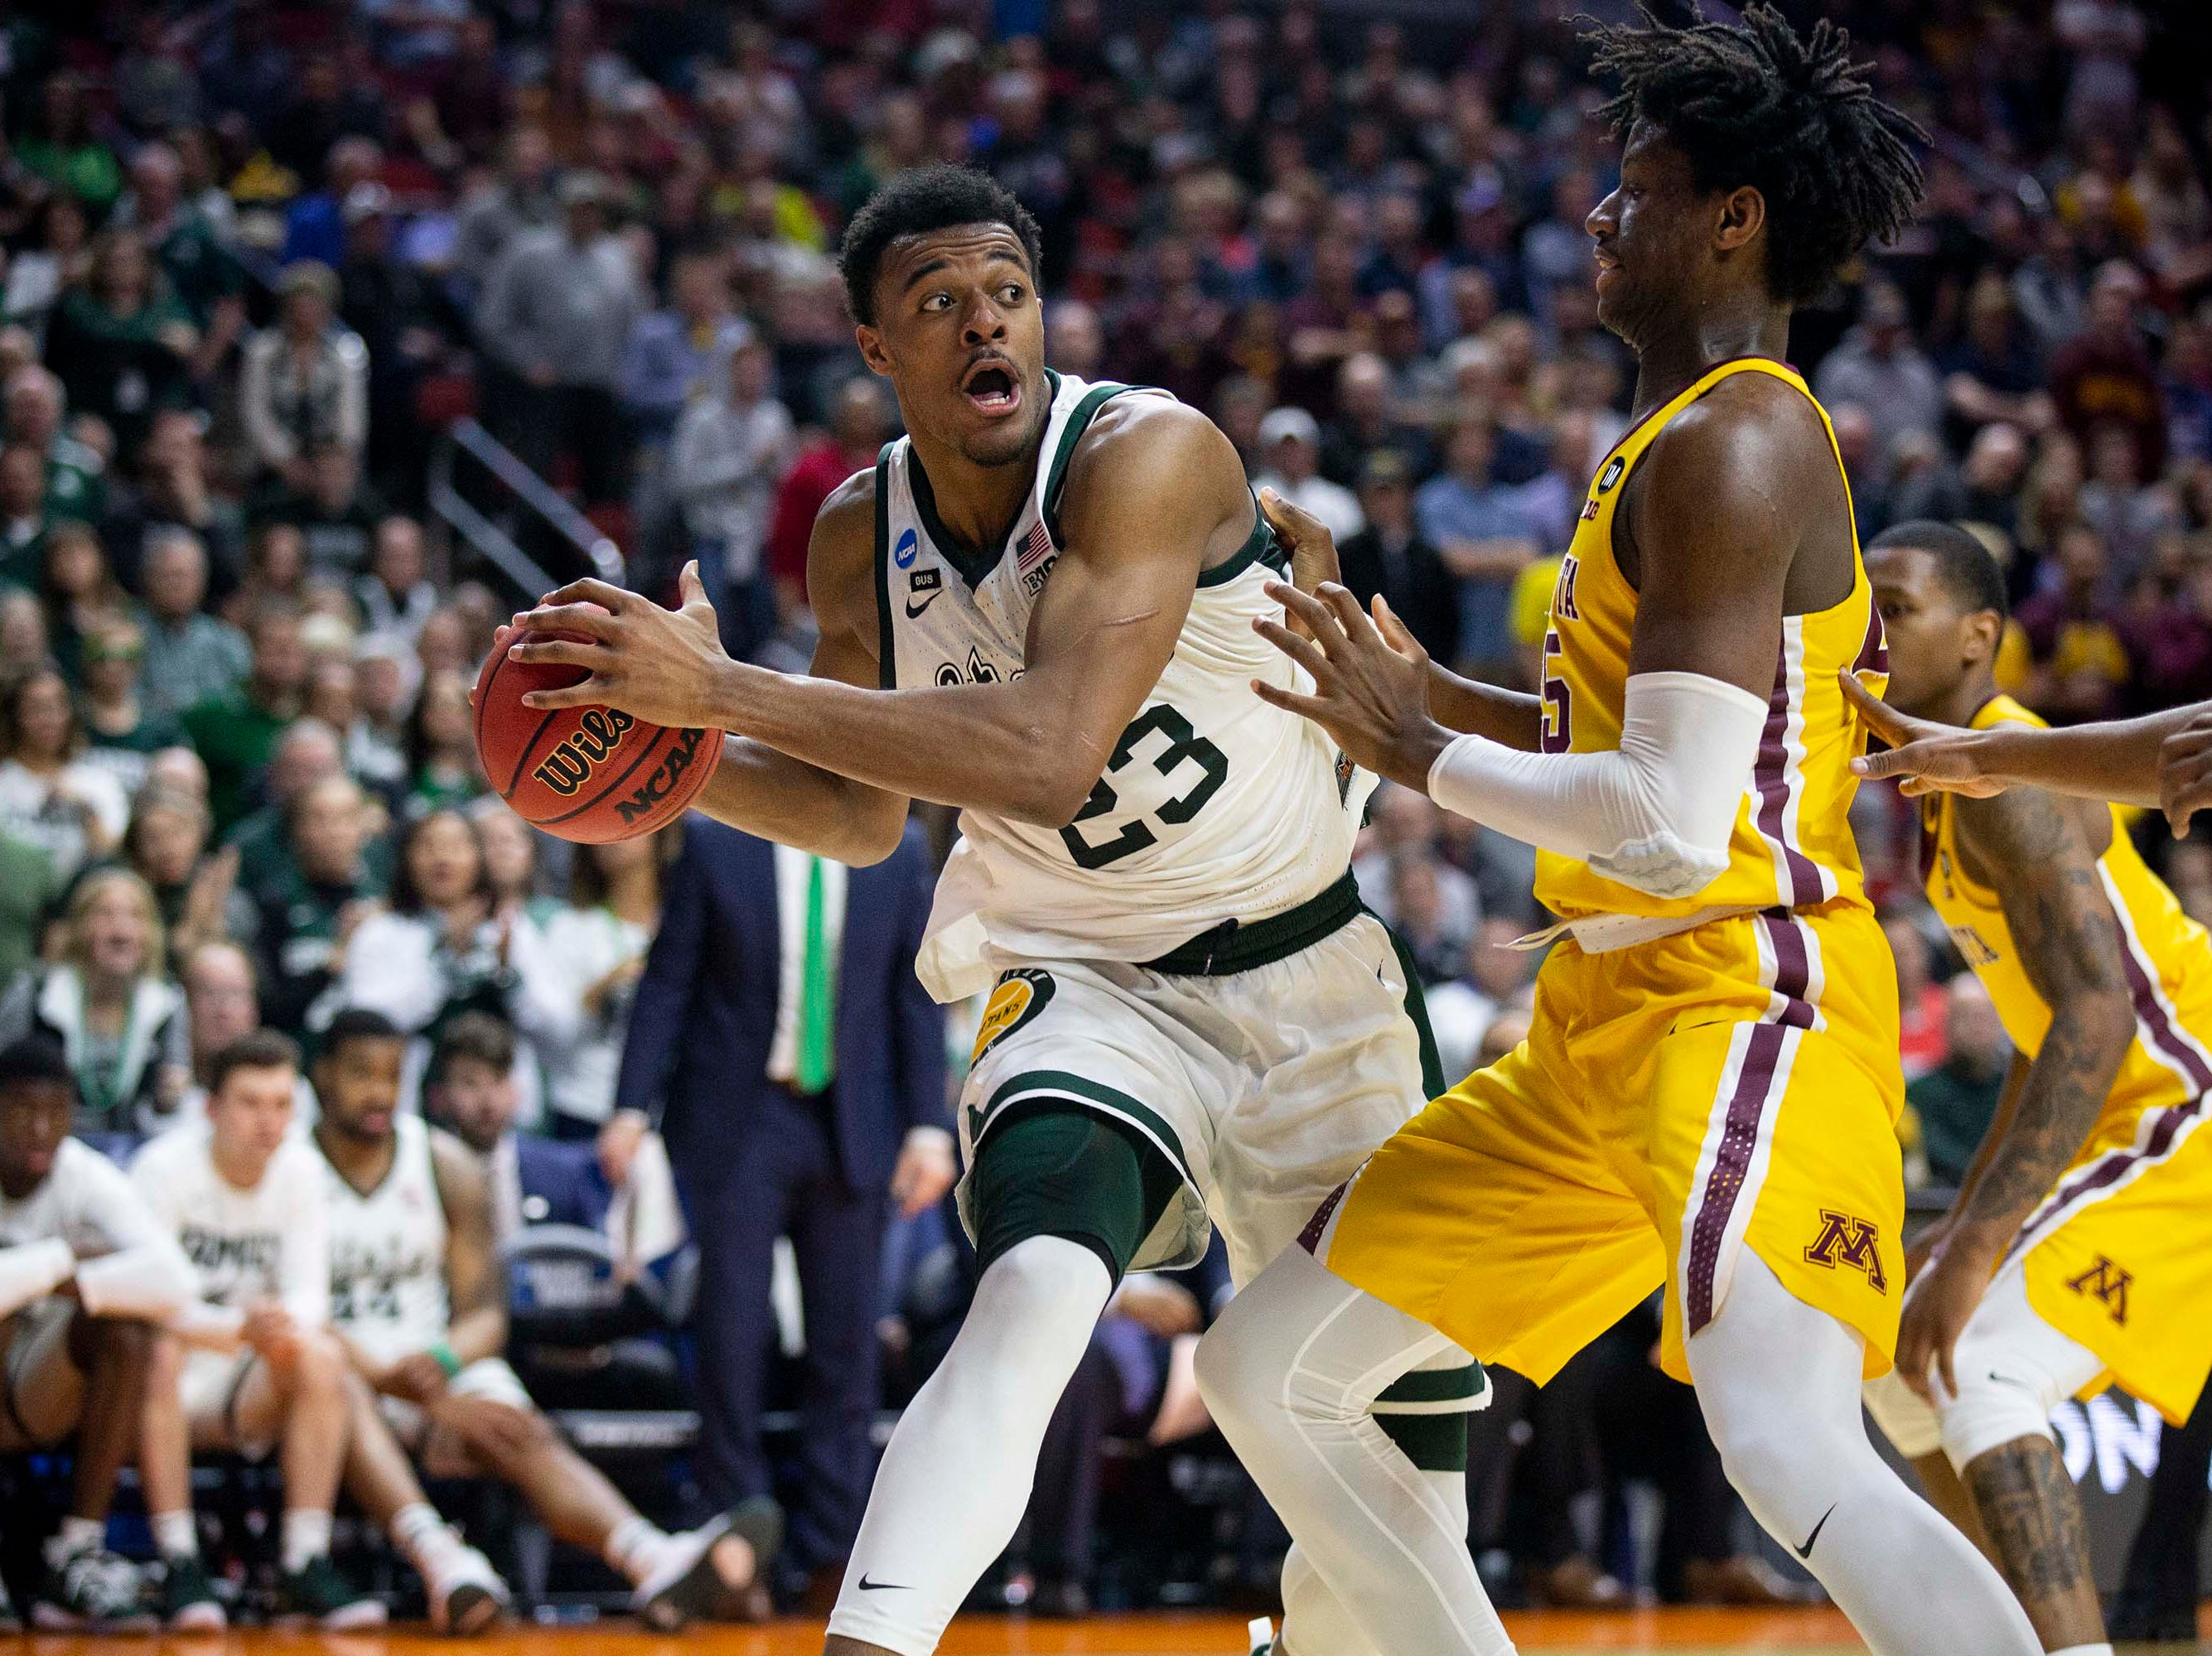 Michigan State's Xavier Tillman looks for an open pass during the NCAA Tournament second-round match-up between Minnesota and Michigan State on Saturday, March 23, 2019, in Wells Fargo Arena in Des Moines, Iowa.